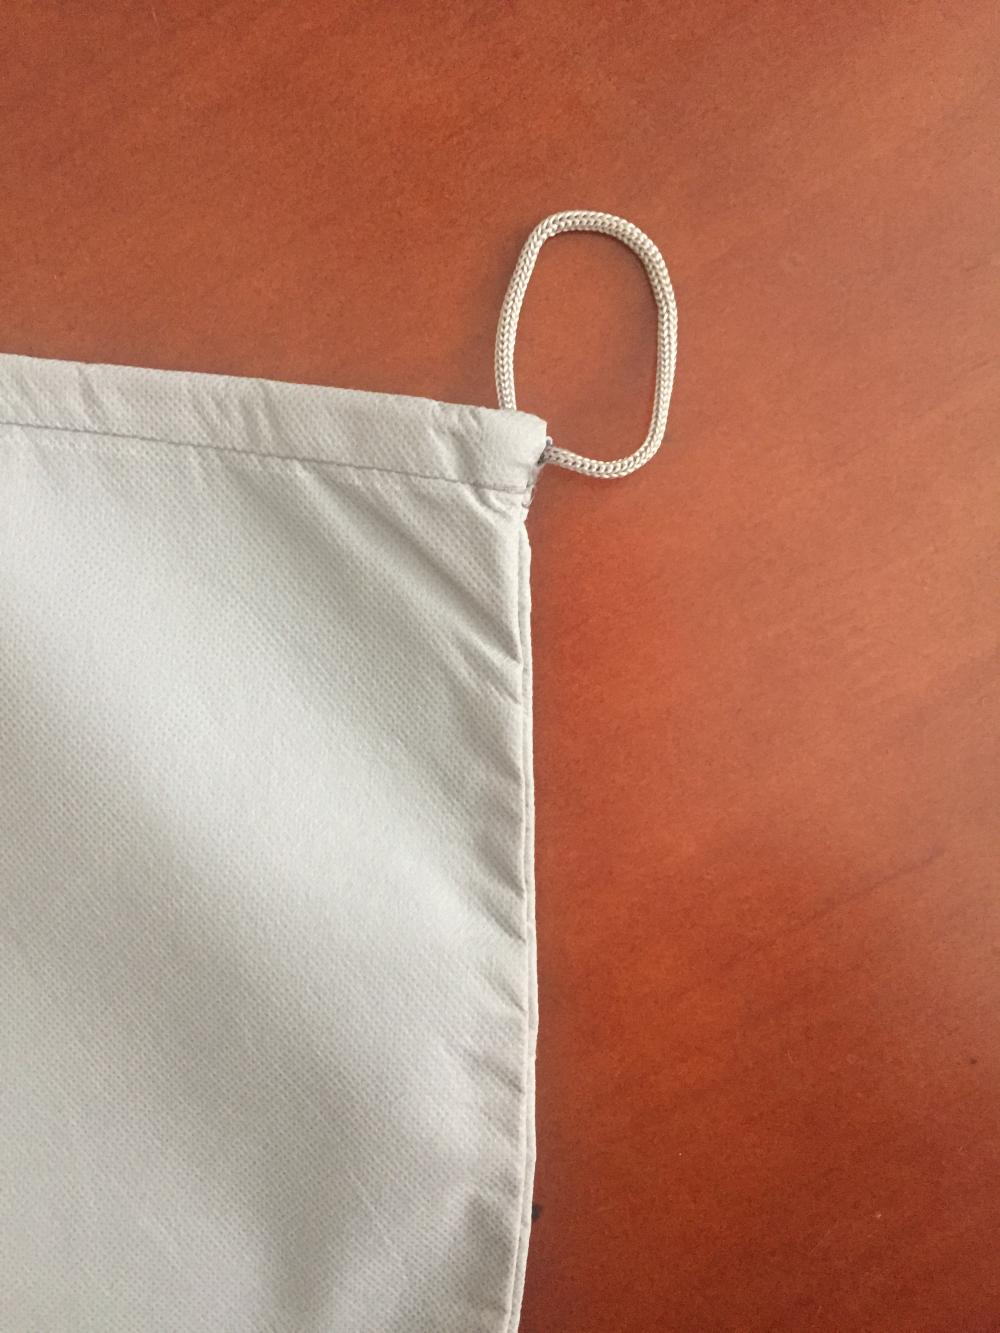 100g single side pulling-styled non-woven laundry bag